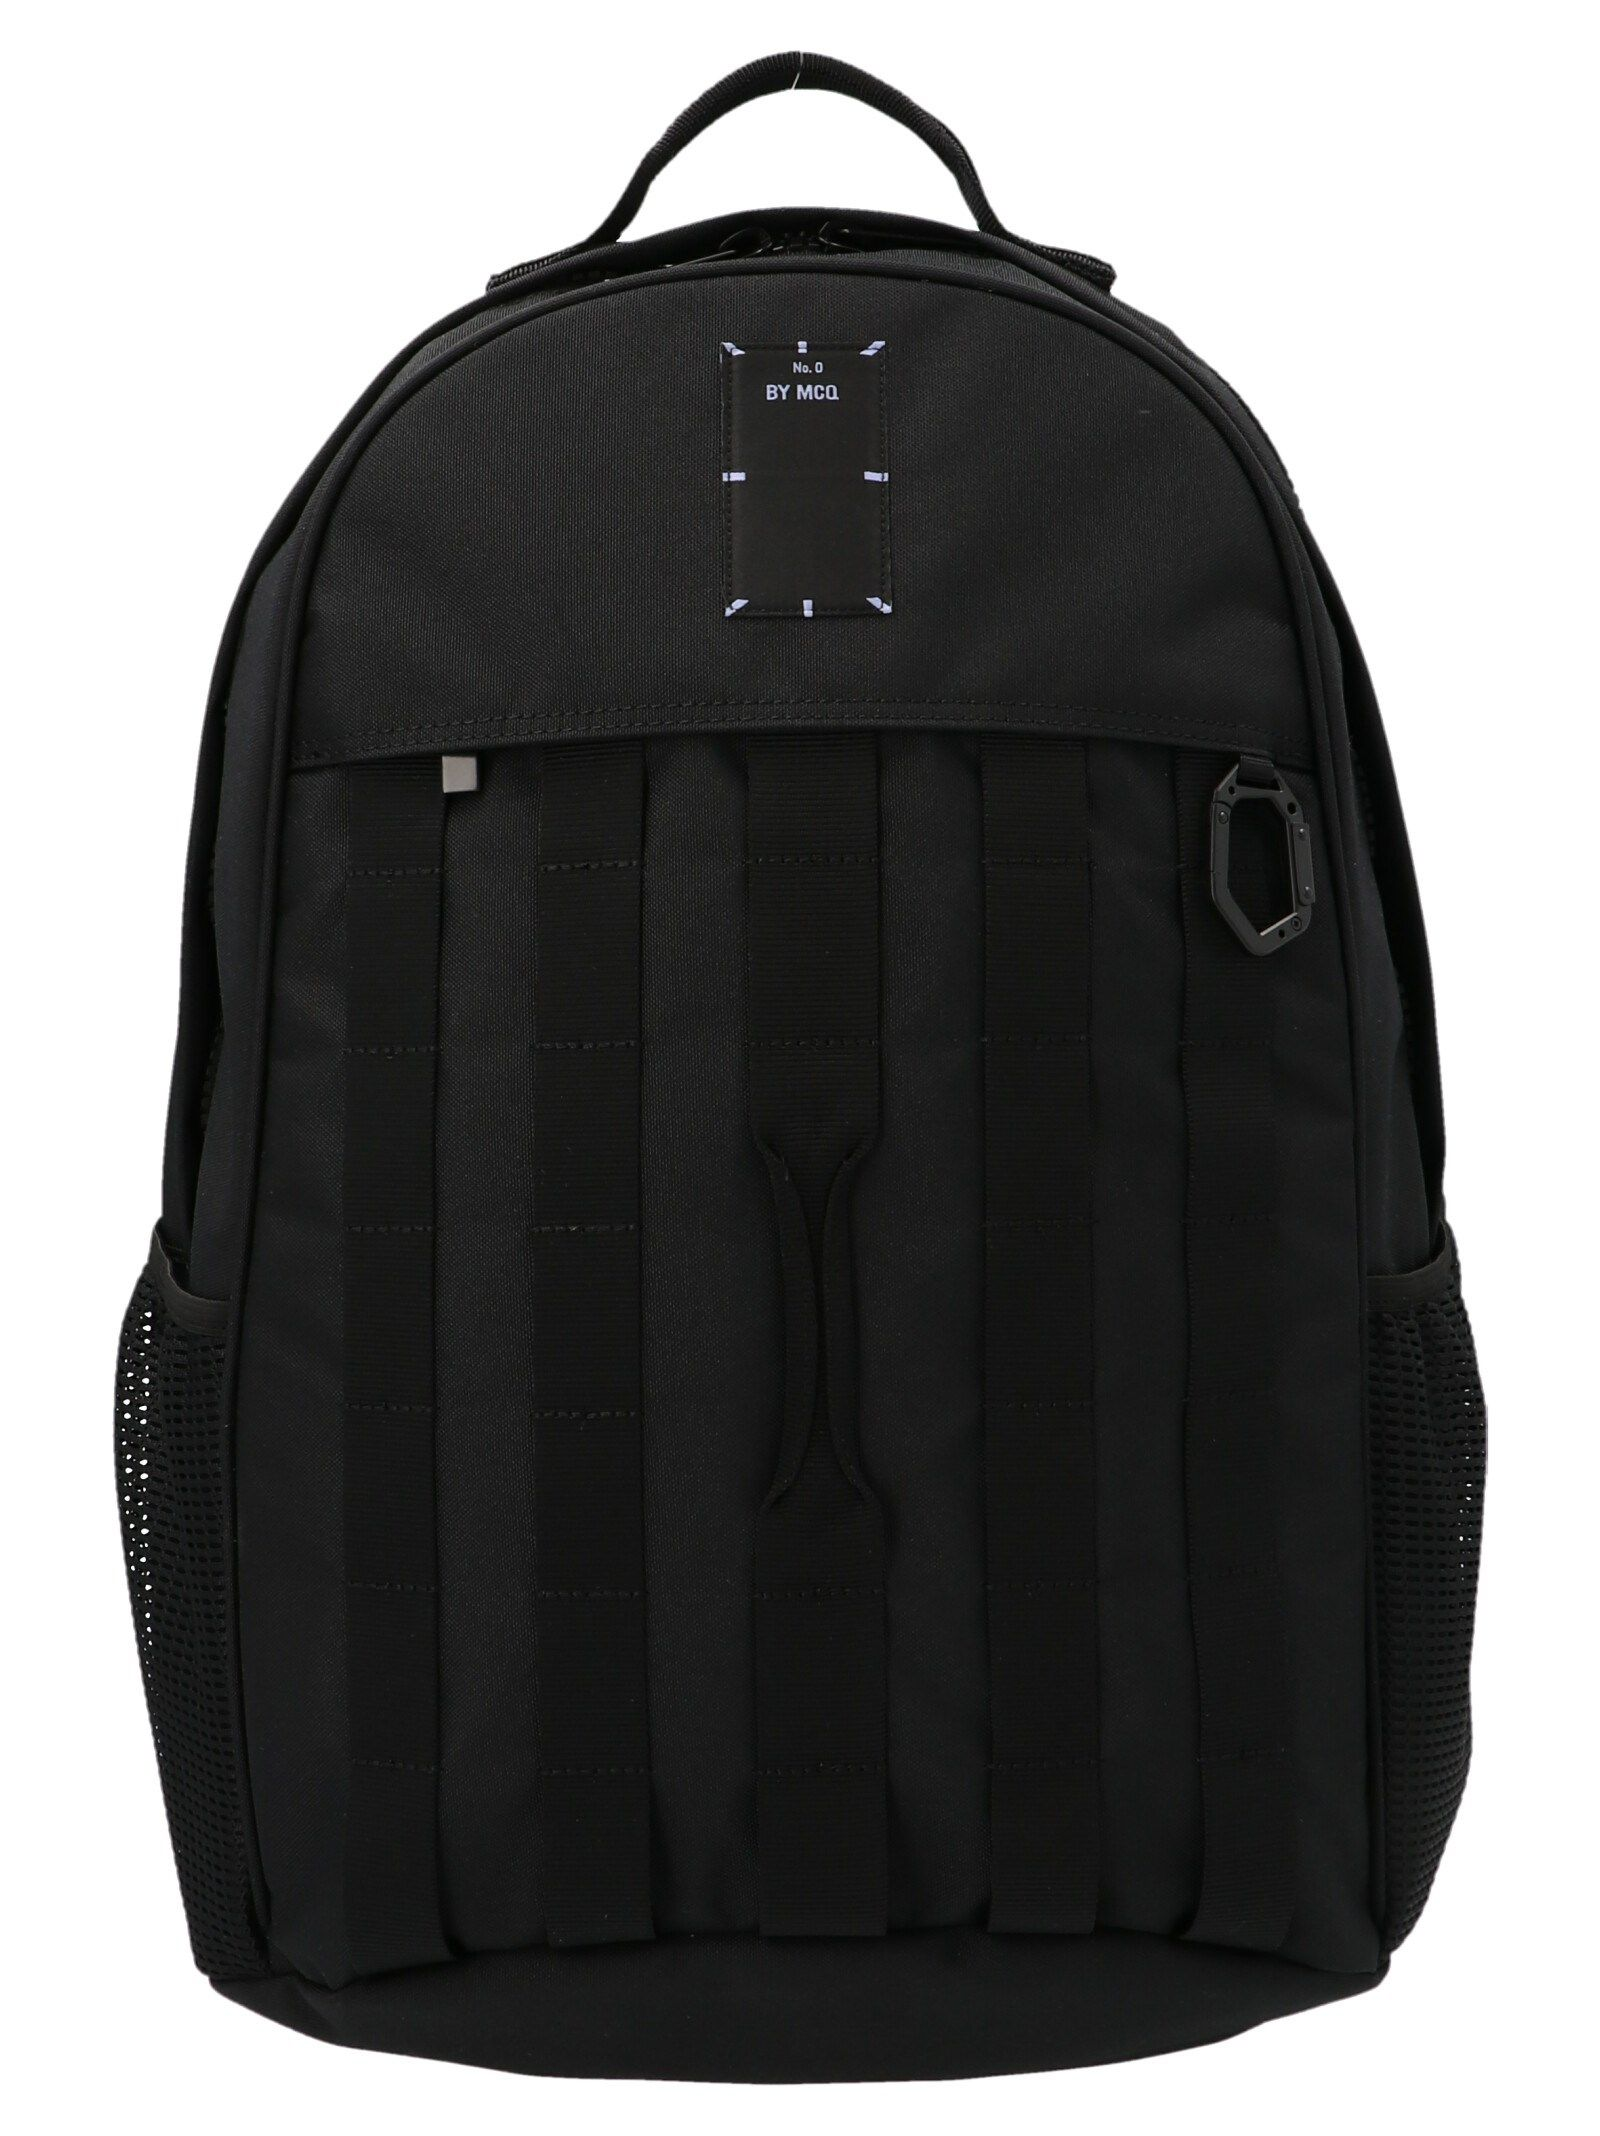 Mcq By Alexander Mcqueen Backpacks MCQ BY ALEXANDER MCQUEEN MEN'S 632553R4C431000 BLACK OTHER MATERIALS BACKPACK